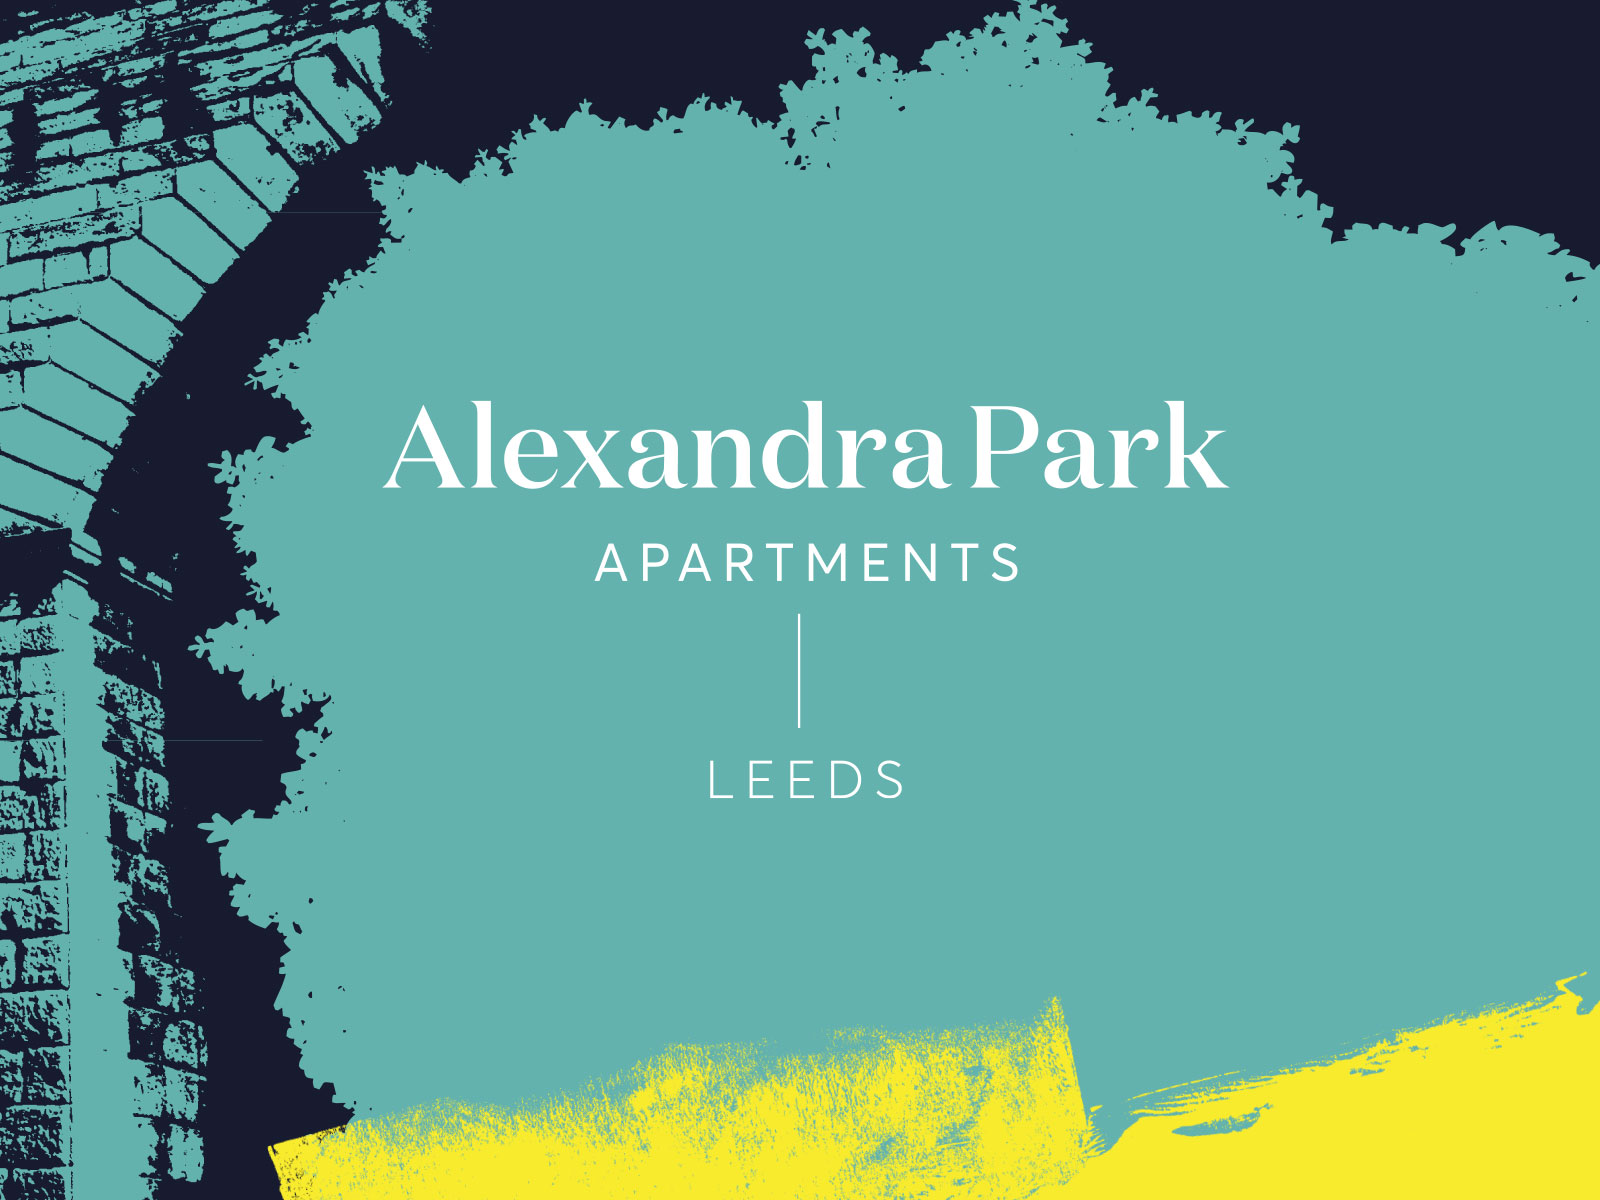 North Property Group: Alexandra Park